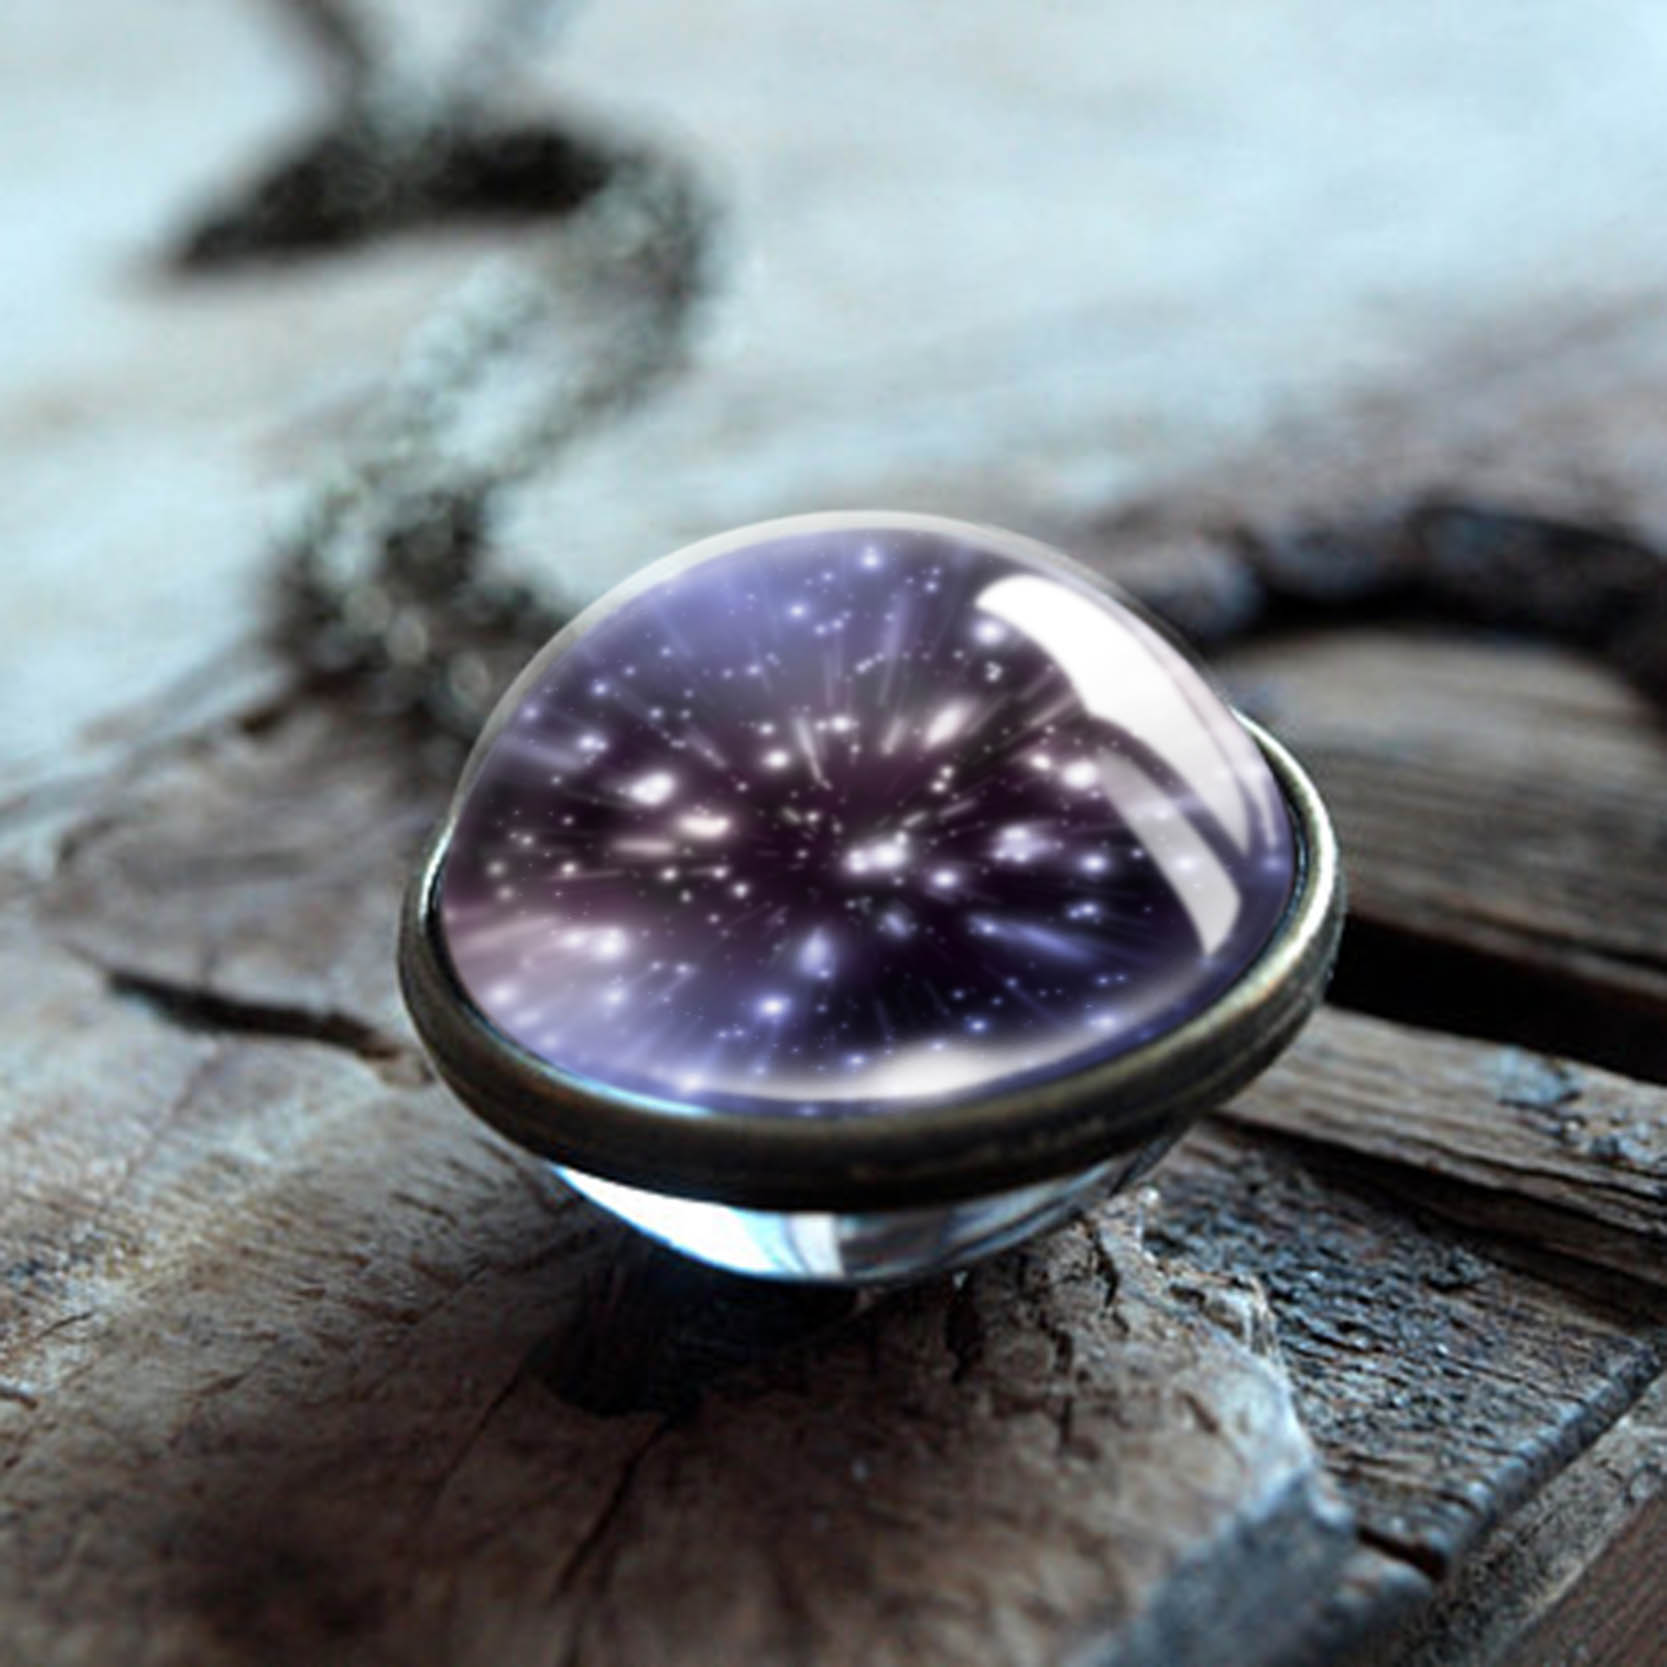 Pendant,Necklace For Women,Double Sided Pendant,Galaxy shape Necklace,Jewelry